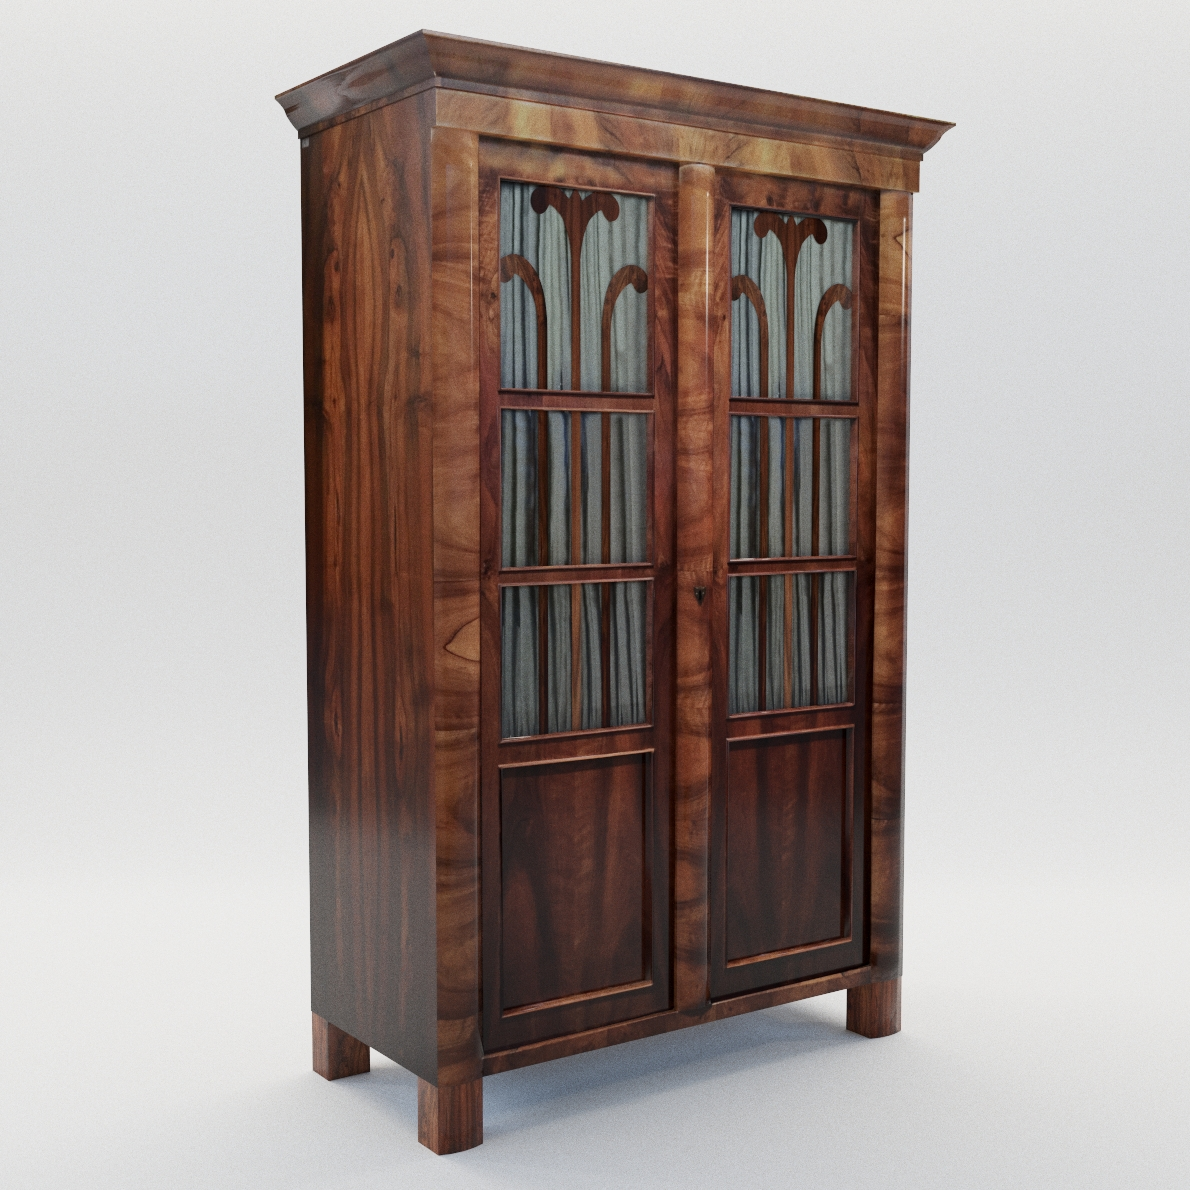 3d model Biedermeier book case – Austria 1830